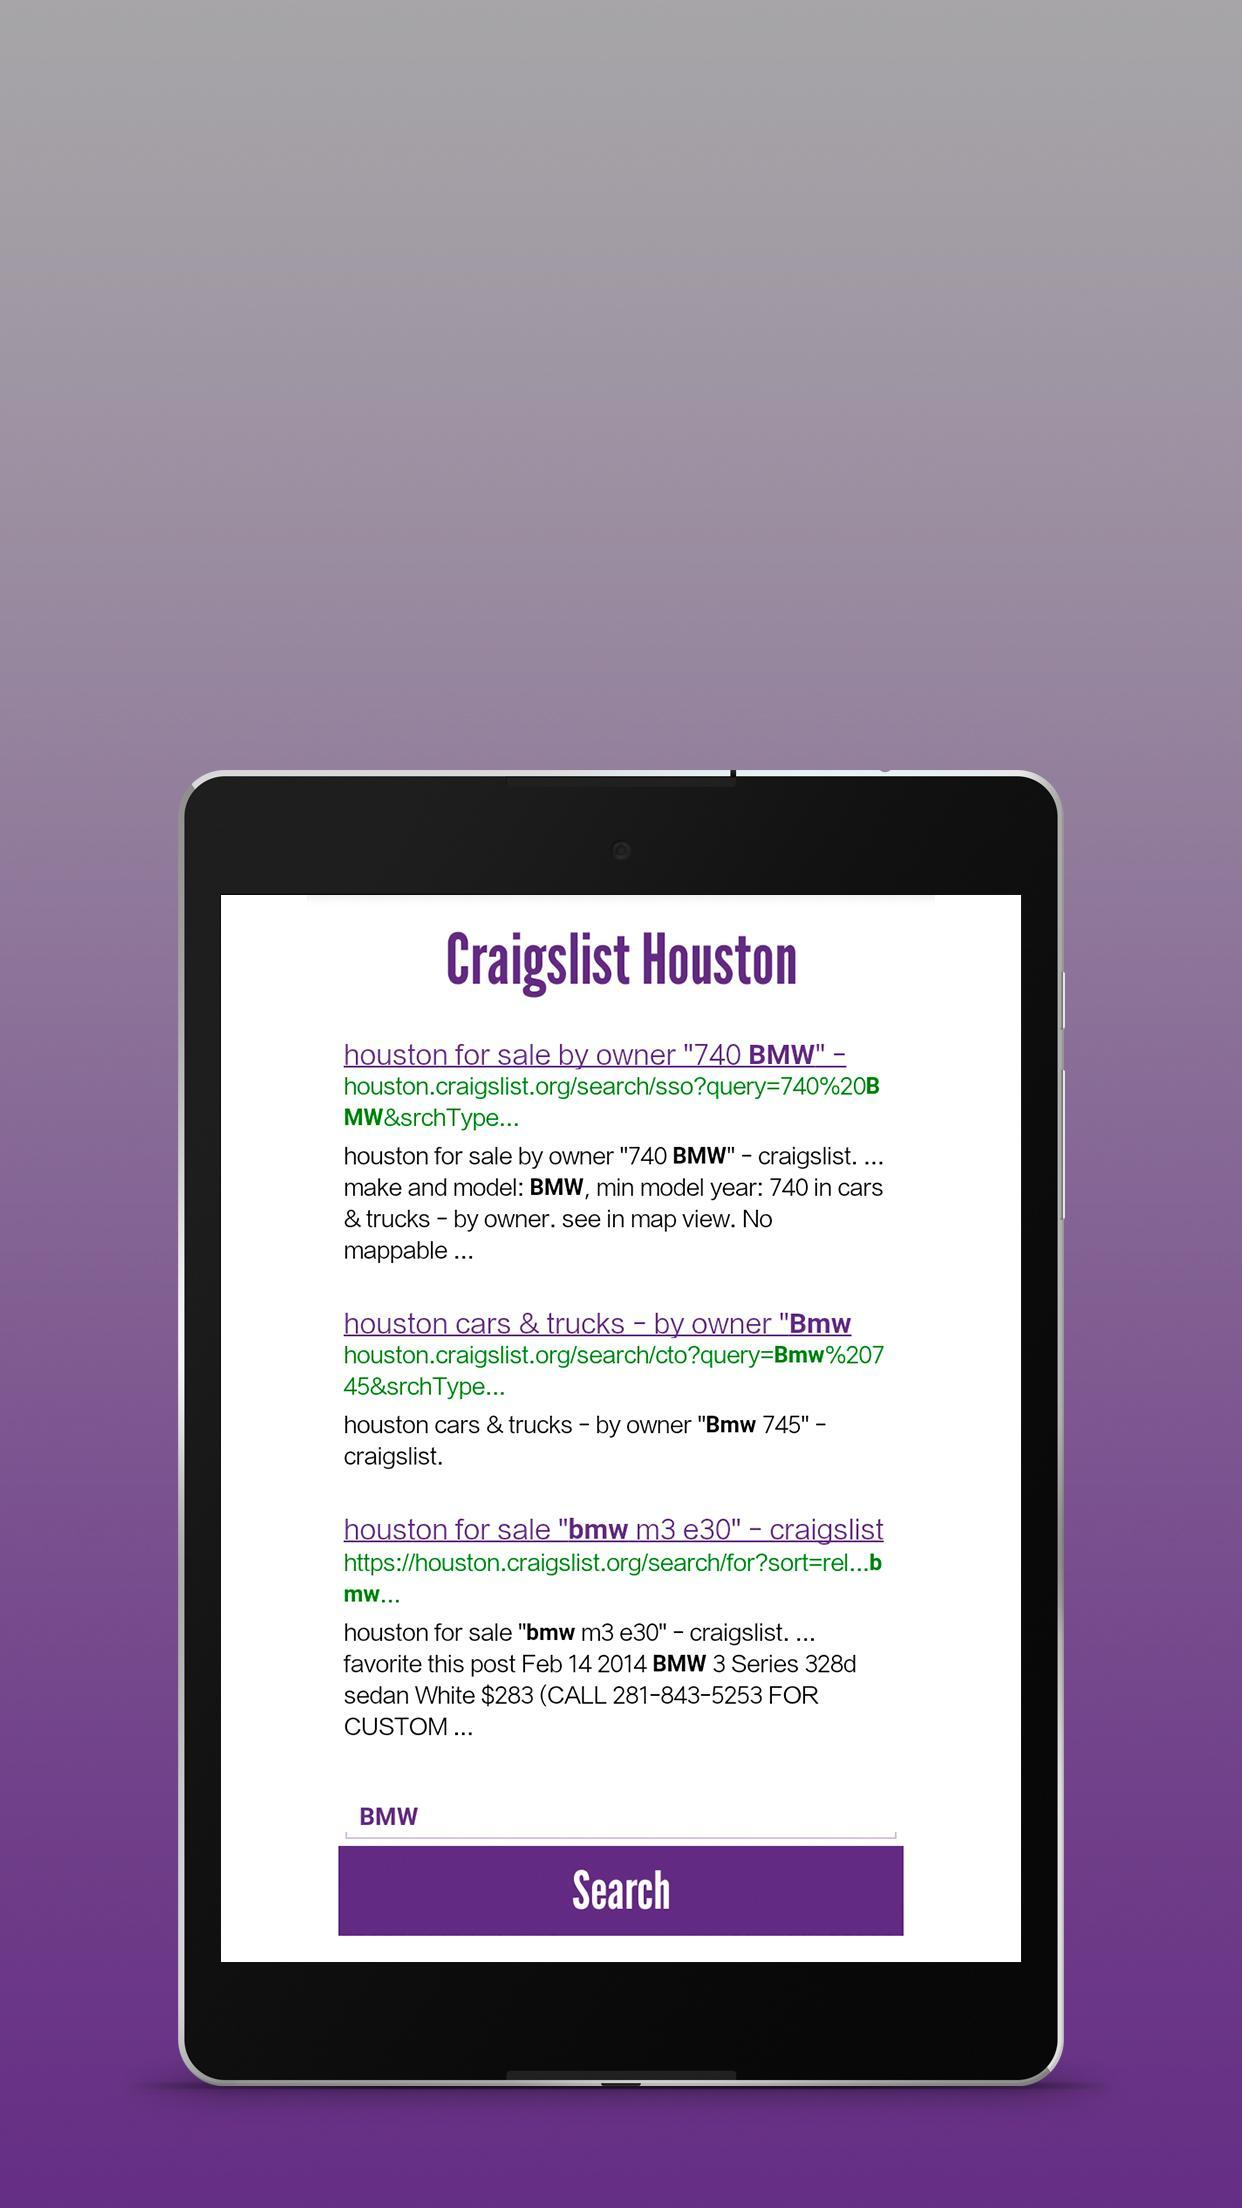 Craigslist Houston Cars And Trucks For Sale By Owner >> Craigslist Houston Search Engine For Android Apk Download